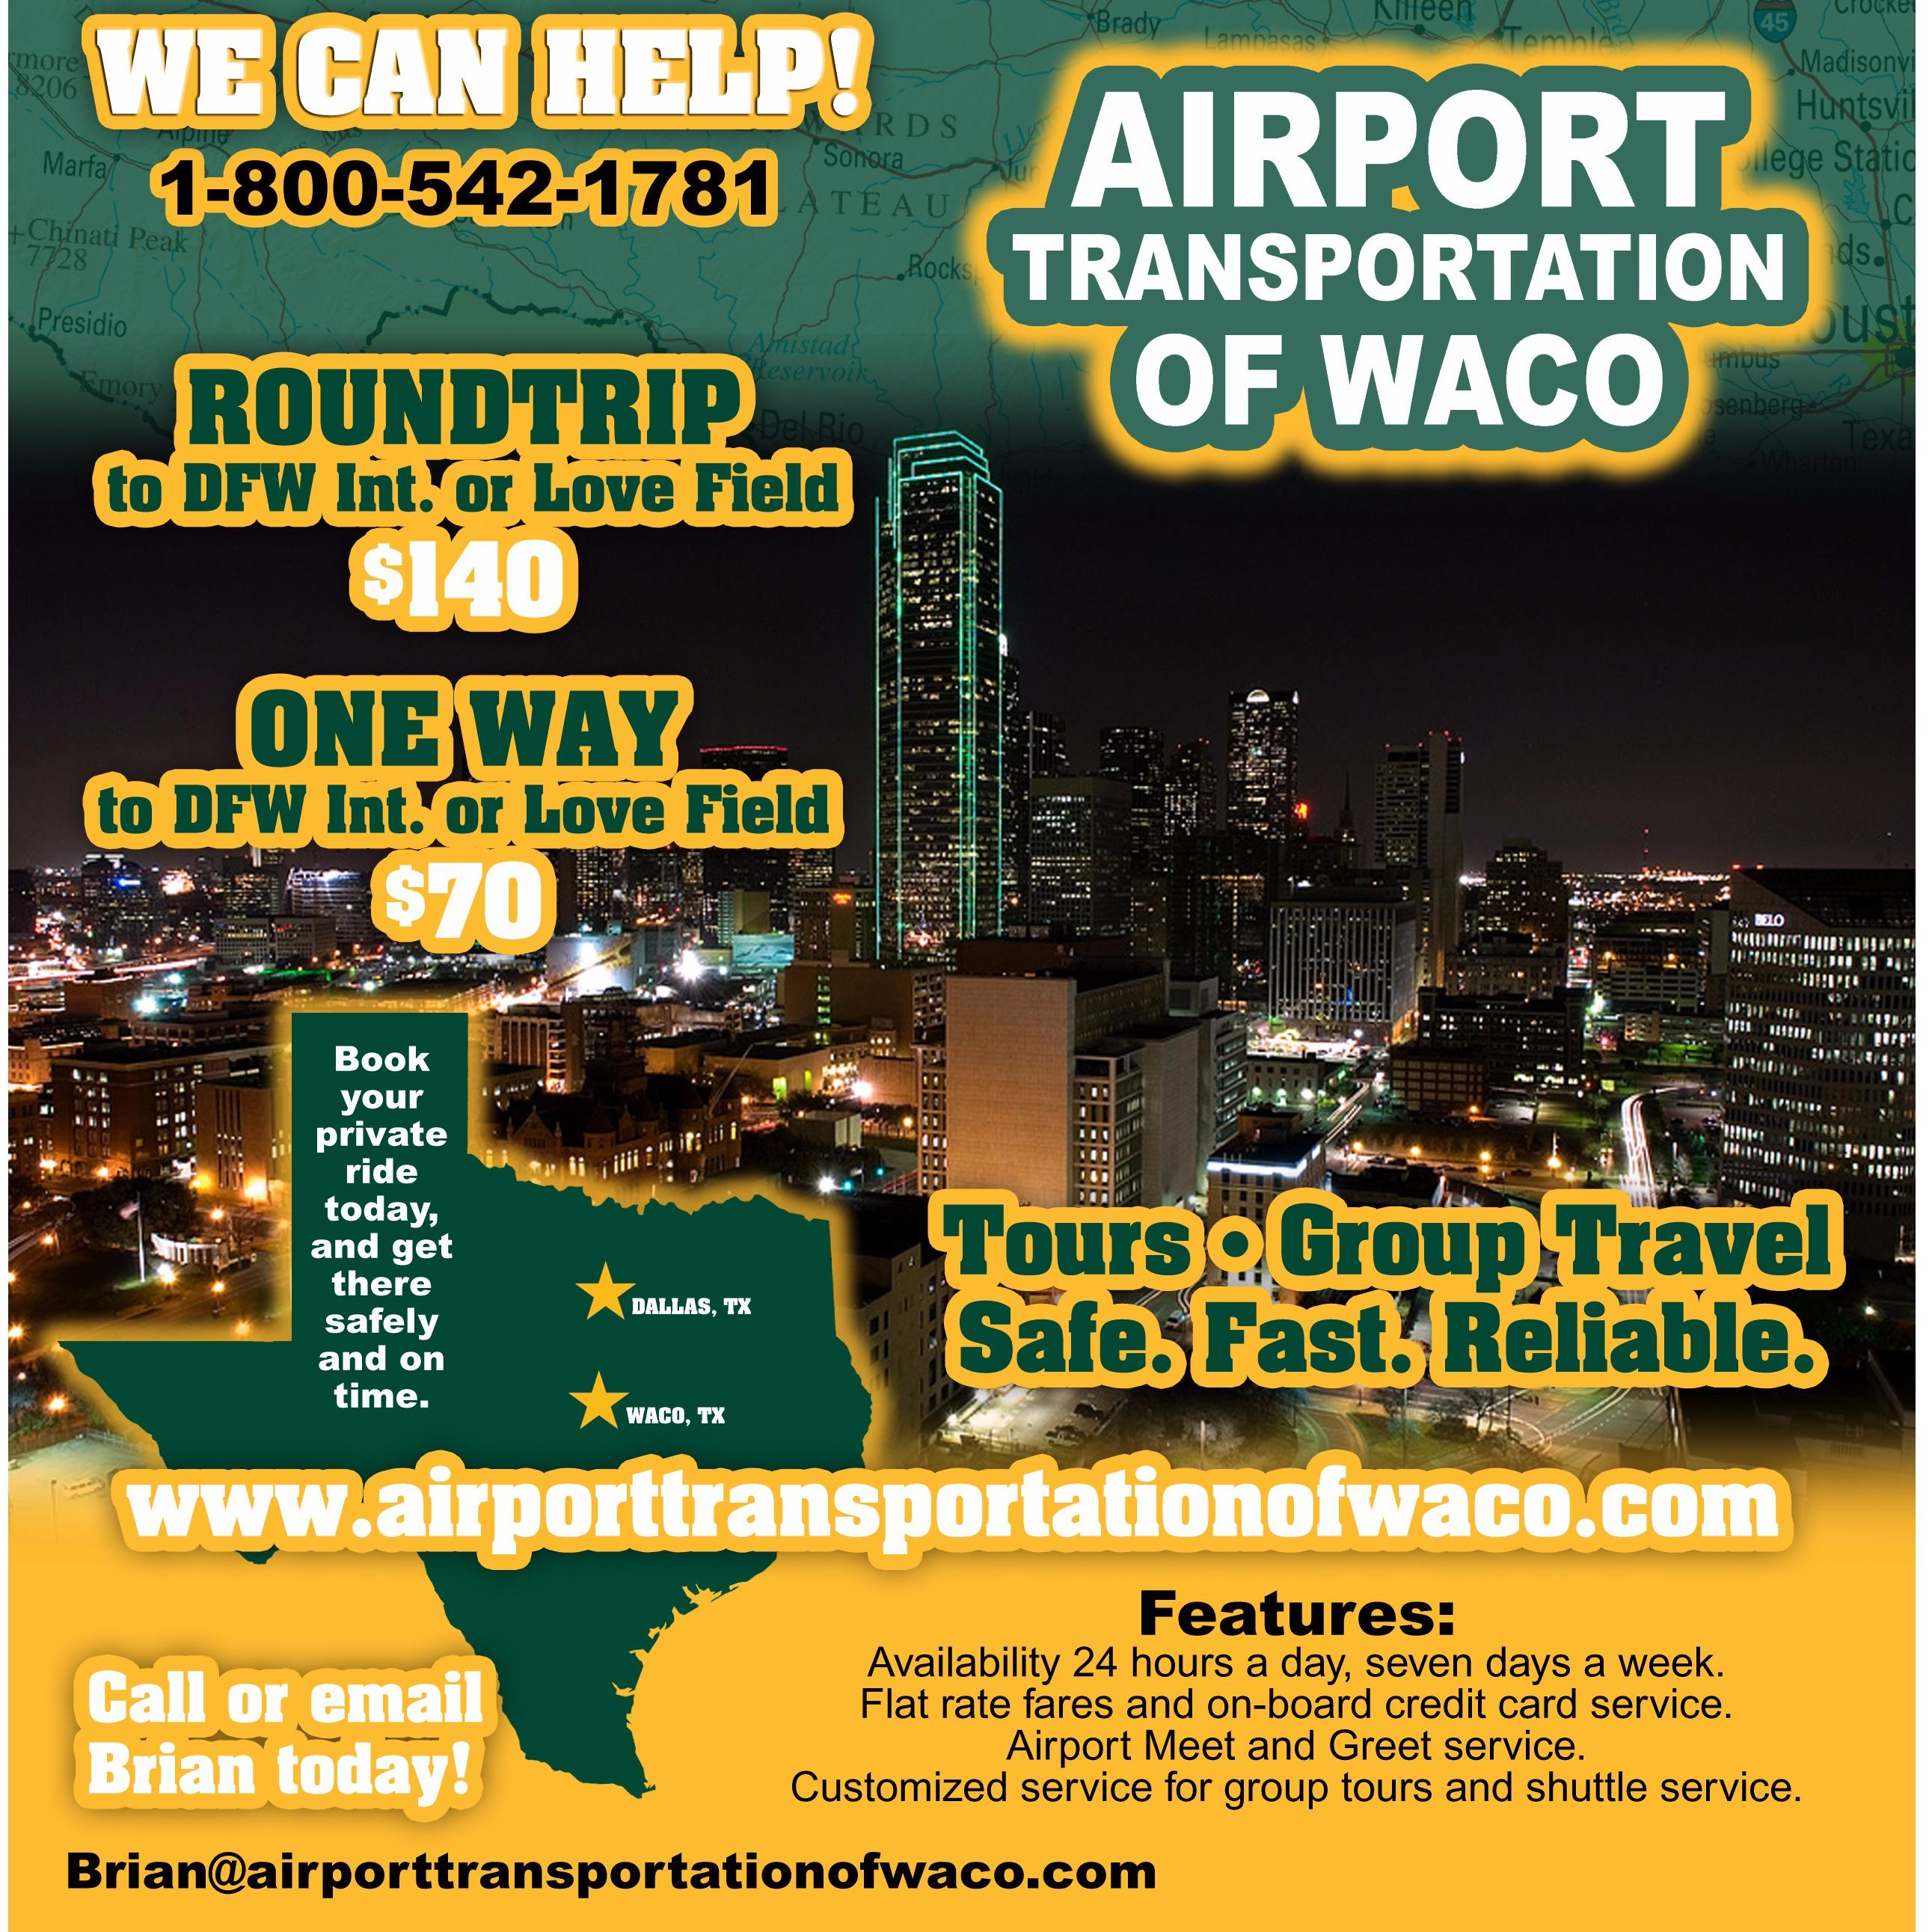 Airport Transportation of Waco